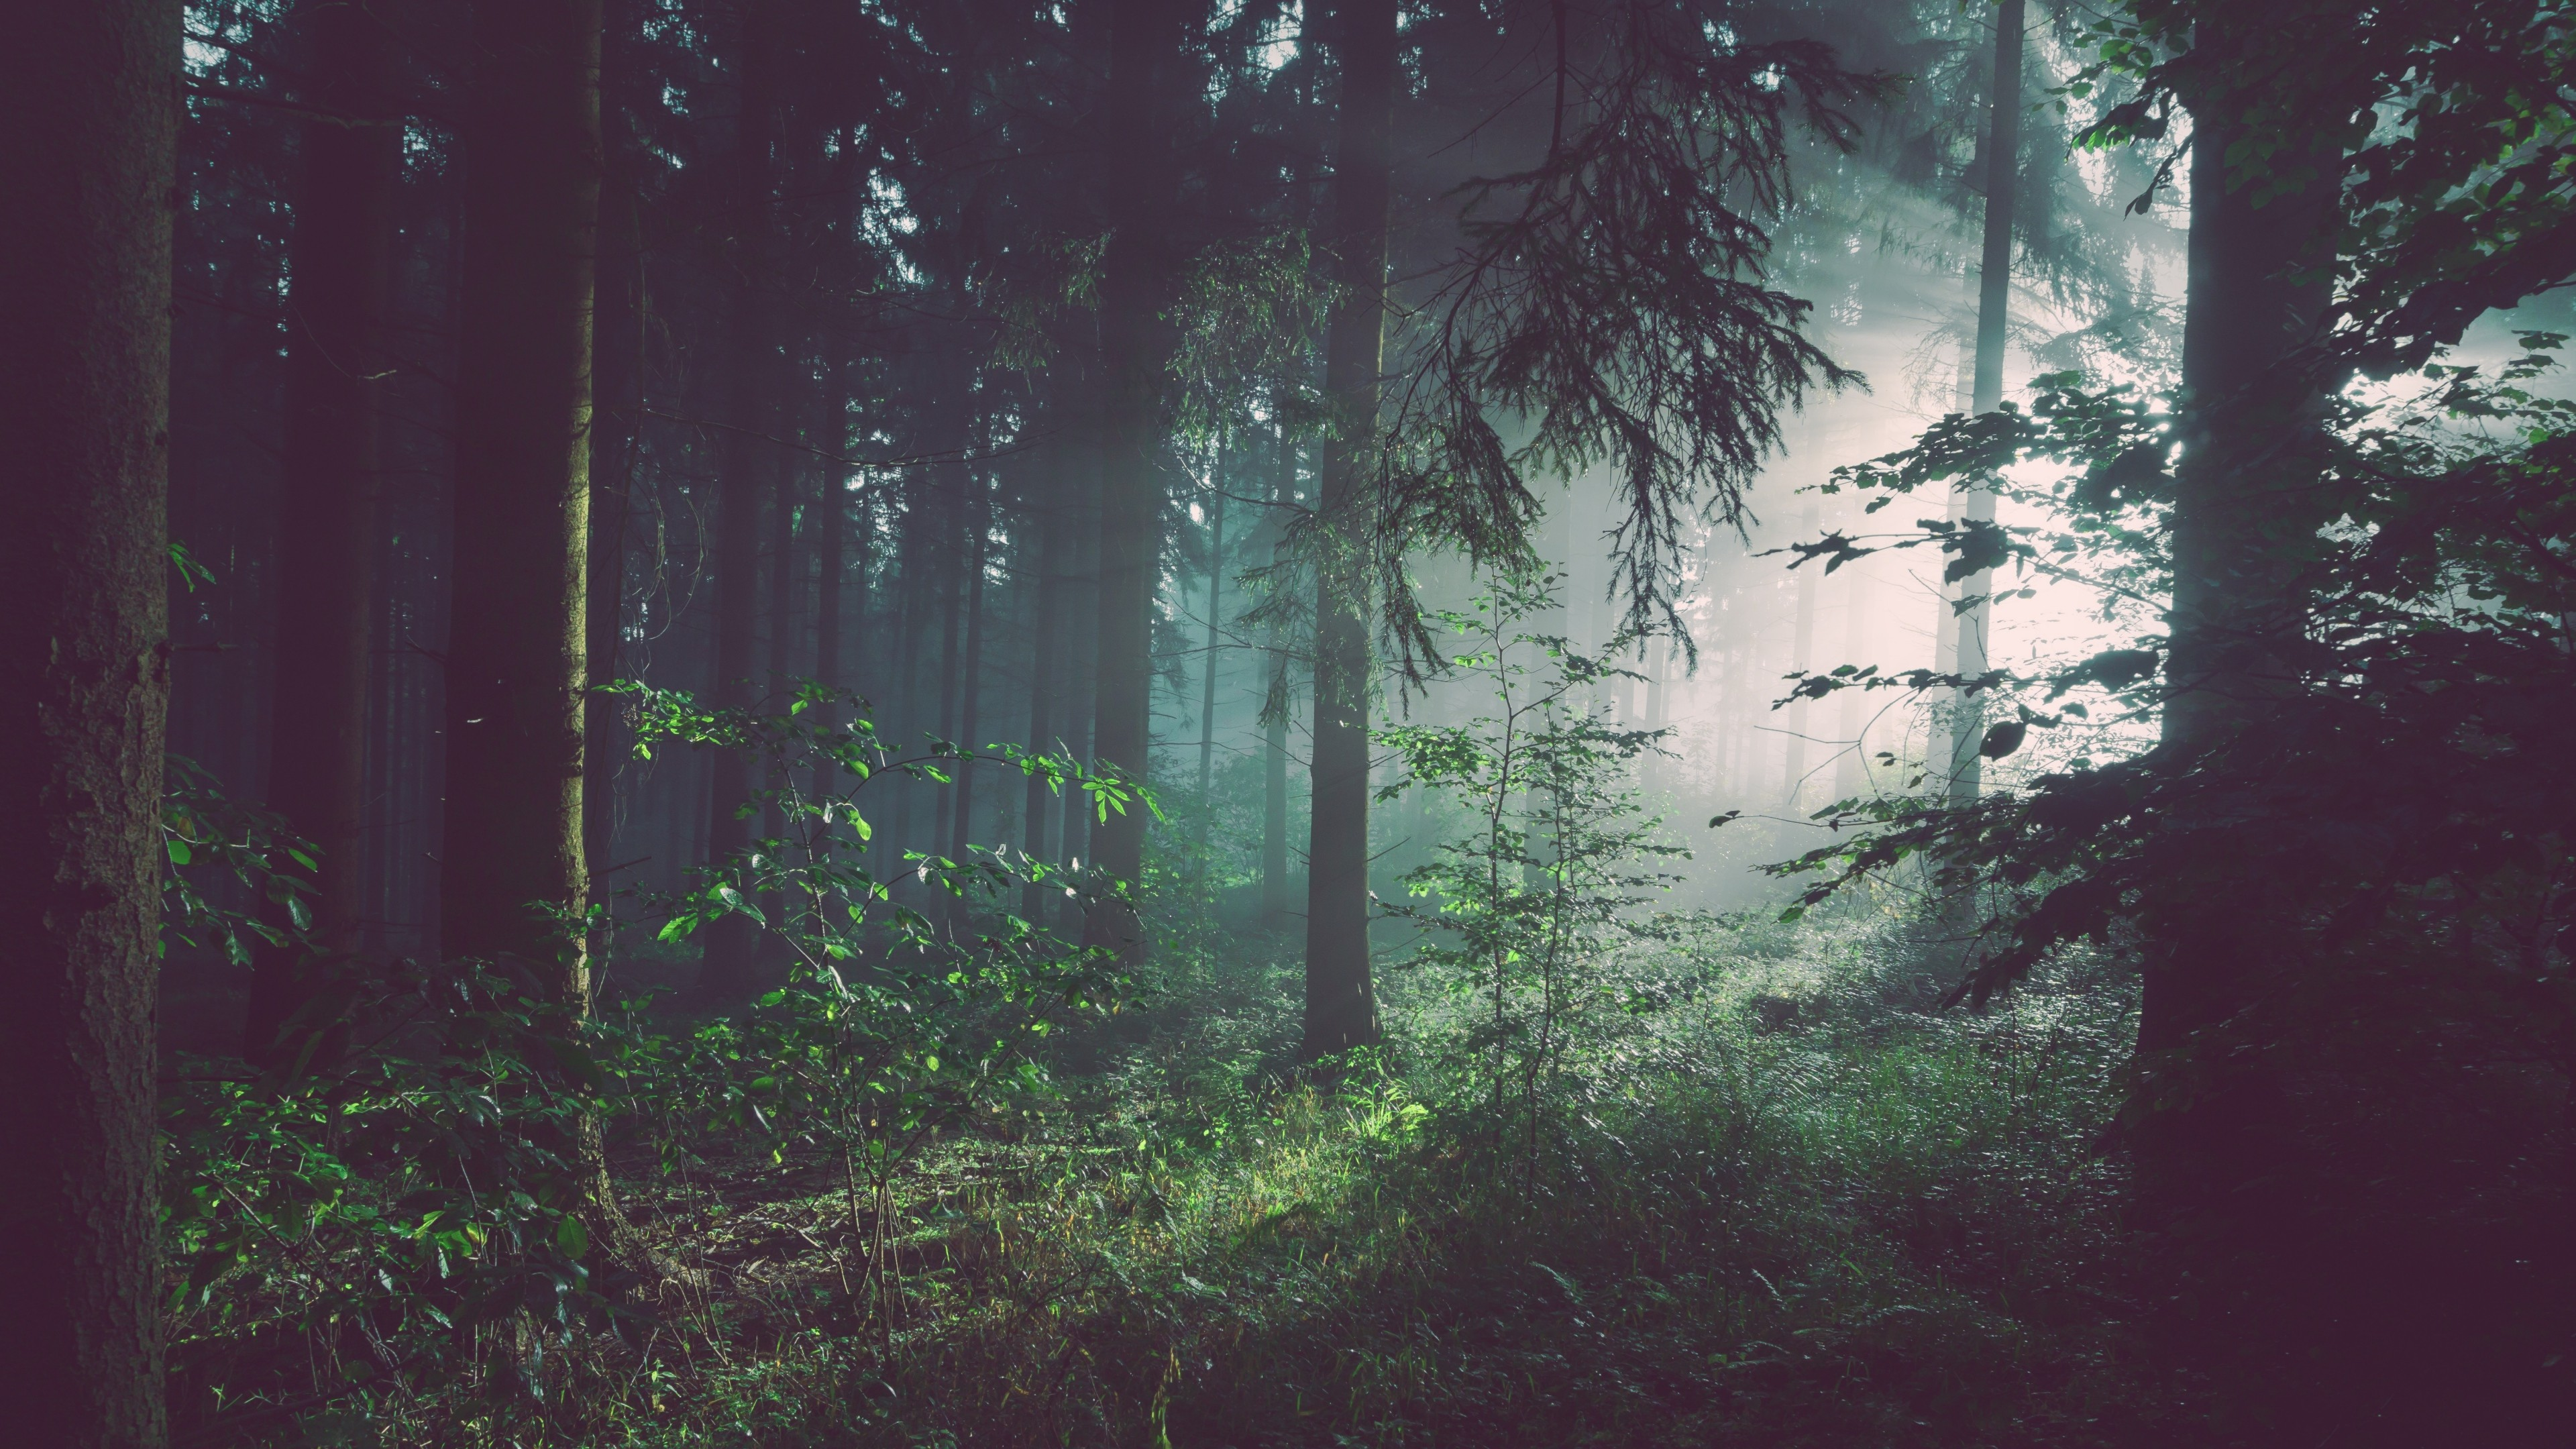 Ultra Hd Wallpaper 4k Green Mountains Natural Trees: Sunbeams In Woods, HD Nature, 4k Wallpapers, Images